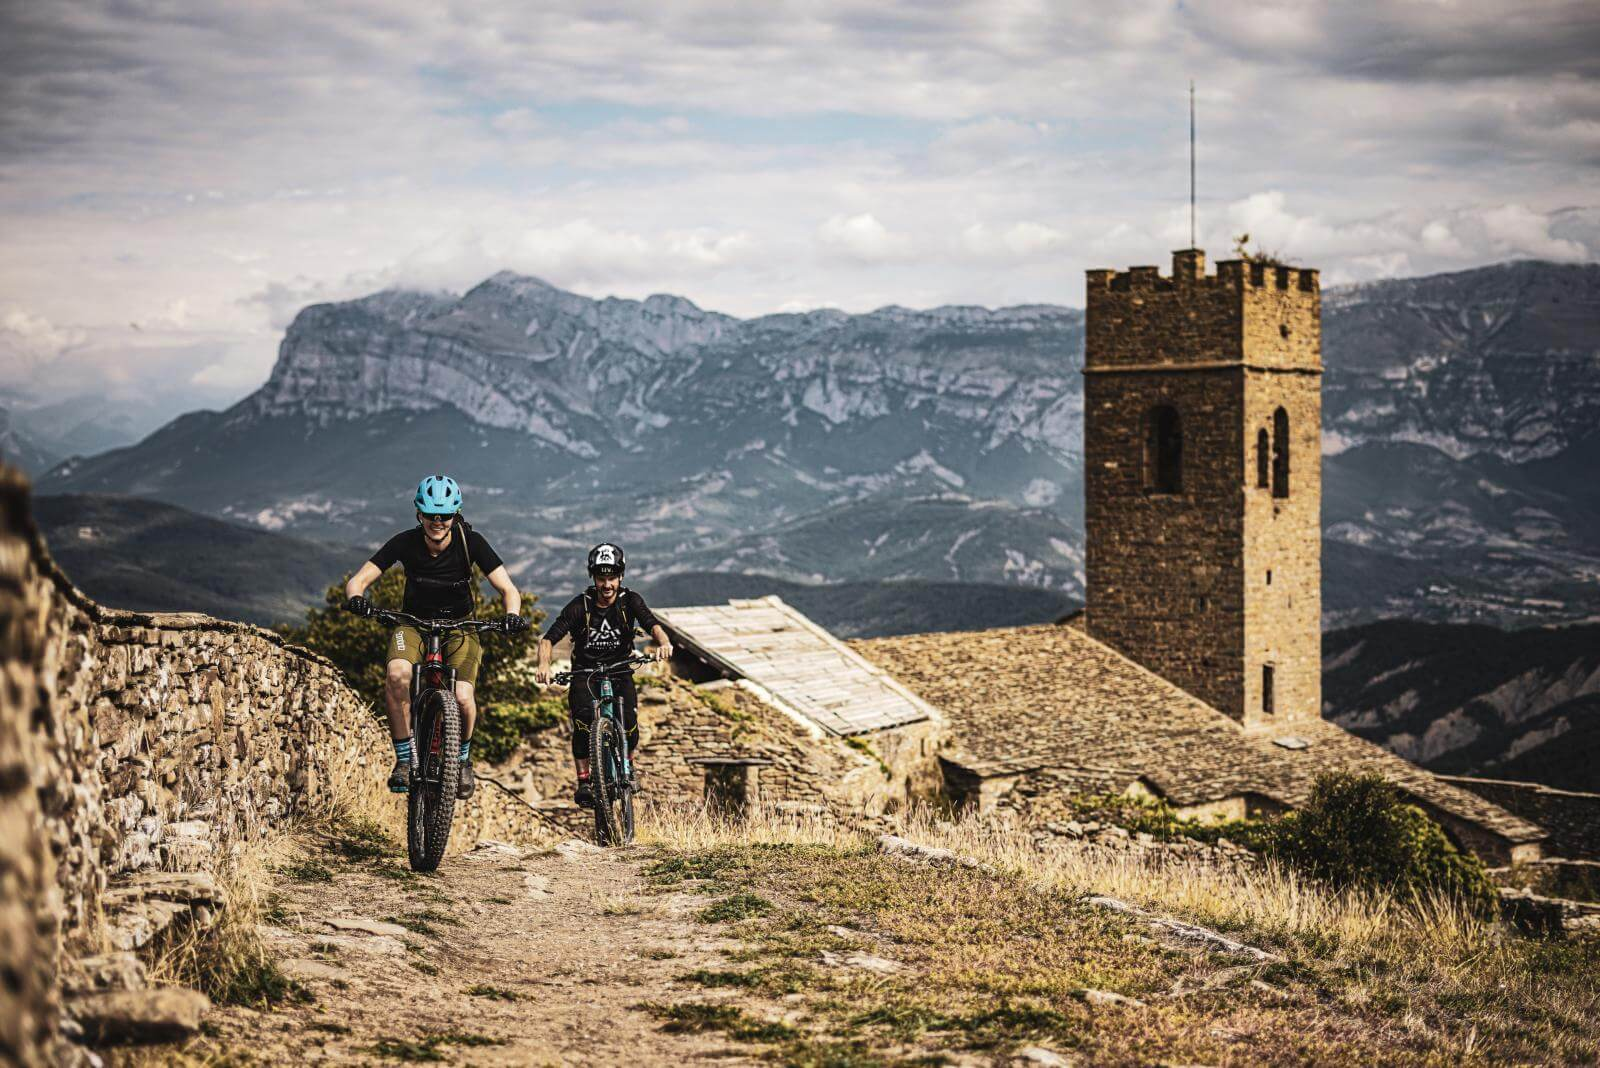 Two mountain bikers riding through Spain, coming up over a hill on a brown dirt path with the Pyrenees and an old stone fortress behind them.